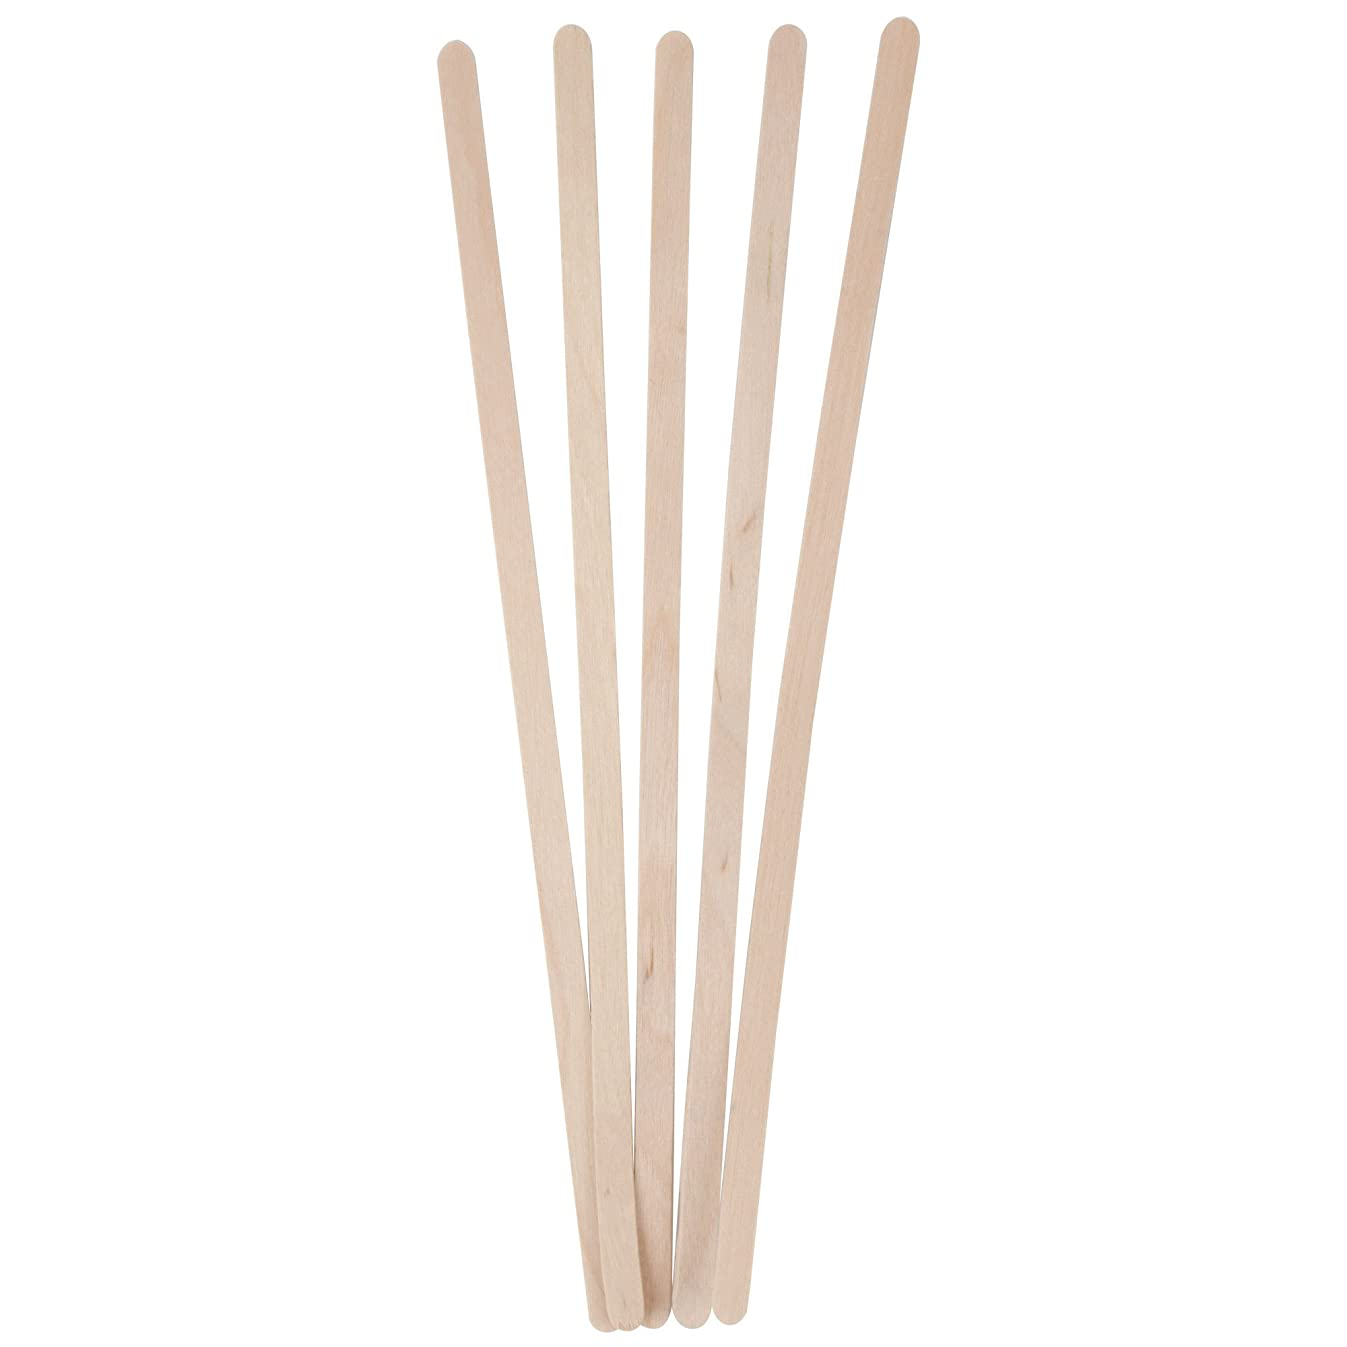 Birch Wood Coffee Stirrers, 1000 Count, Round Ends, 7